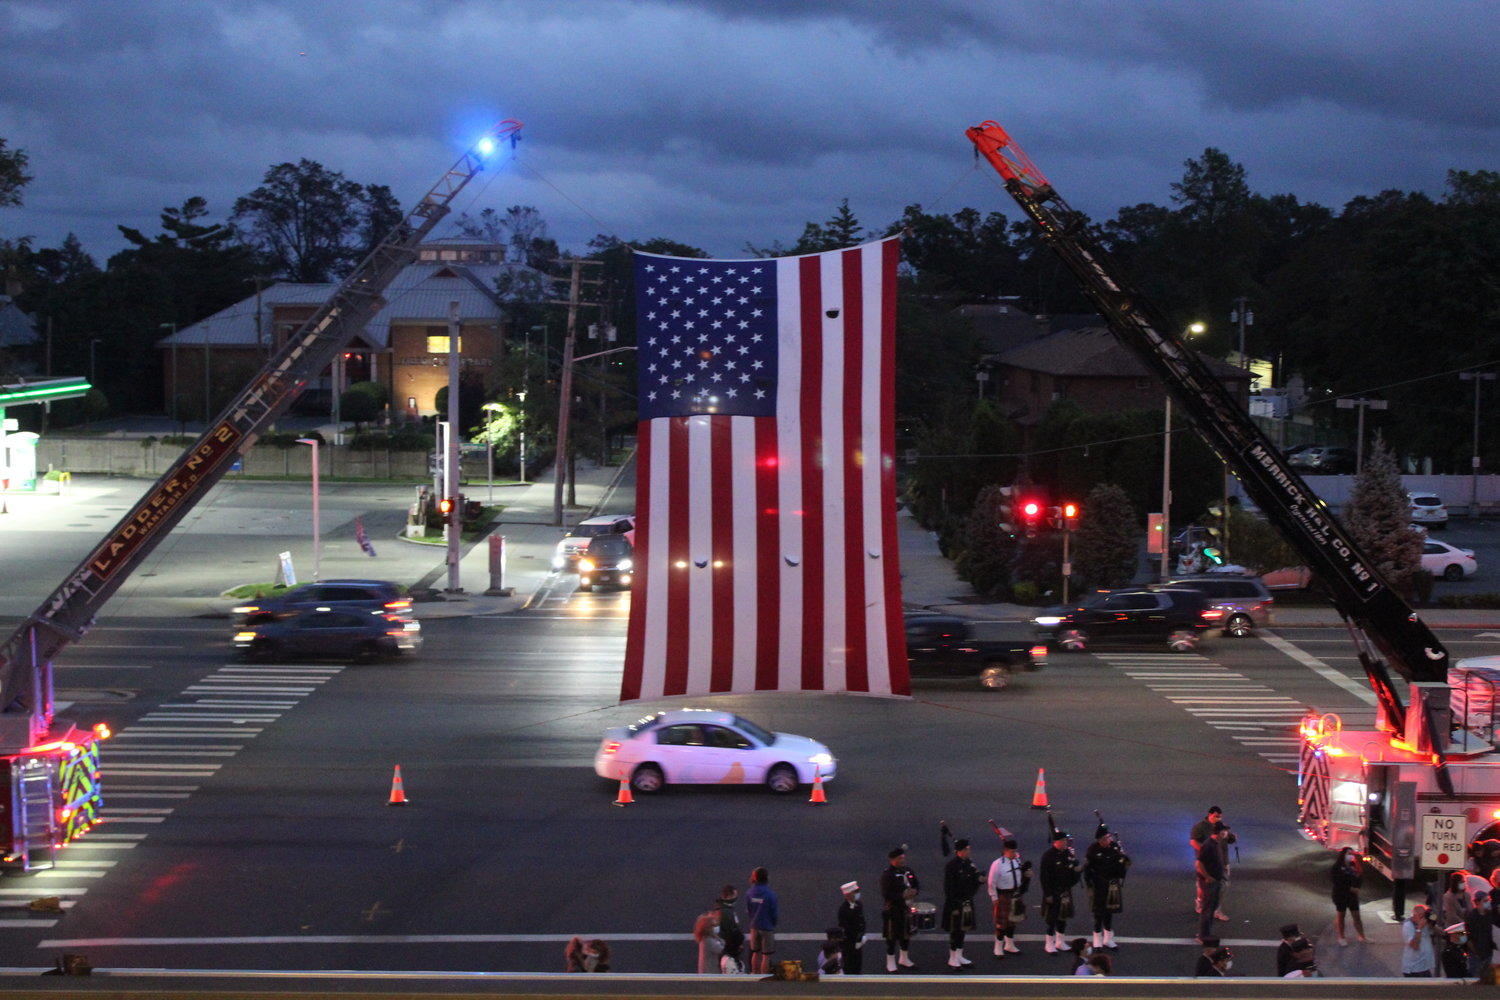 A large American flag hoisted high above the ceremony could be seen by every driver passing the intersection of Merrick Avenue and Sunrise Highway.